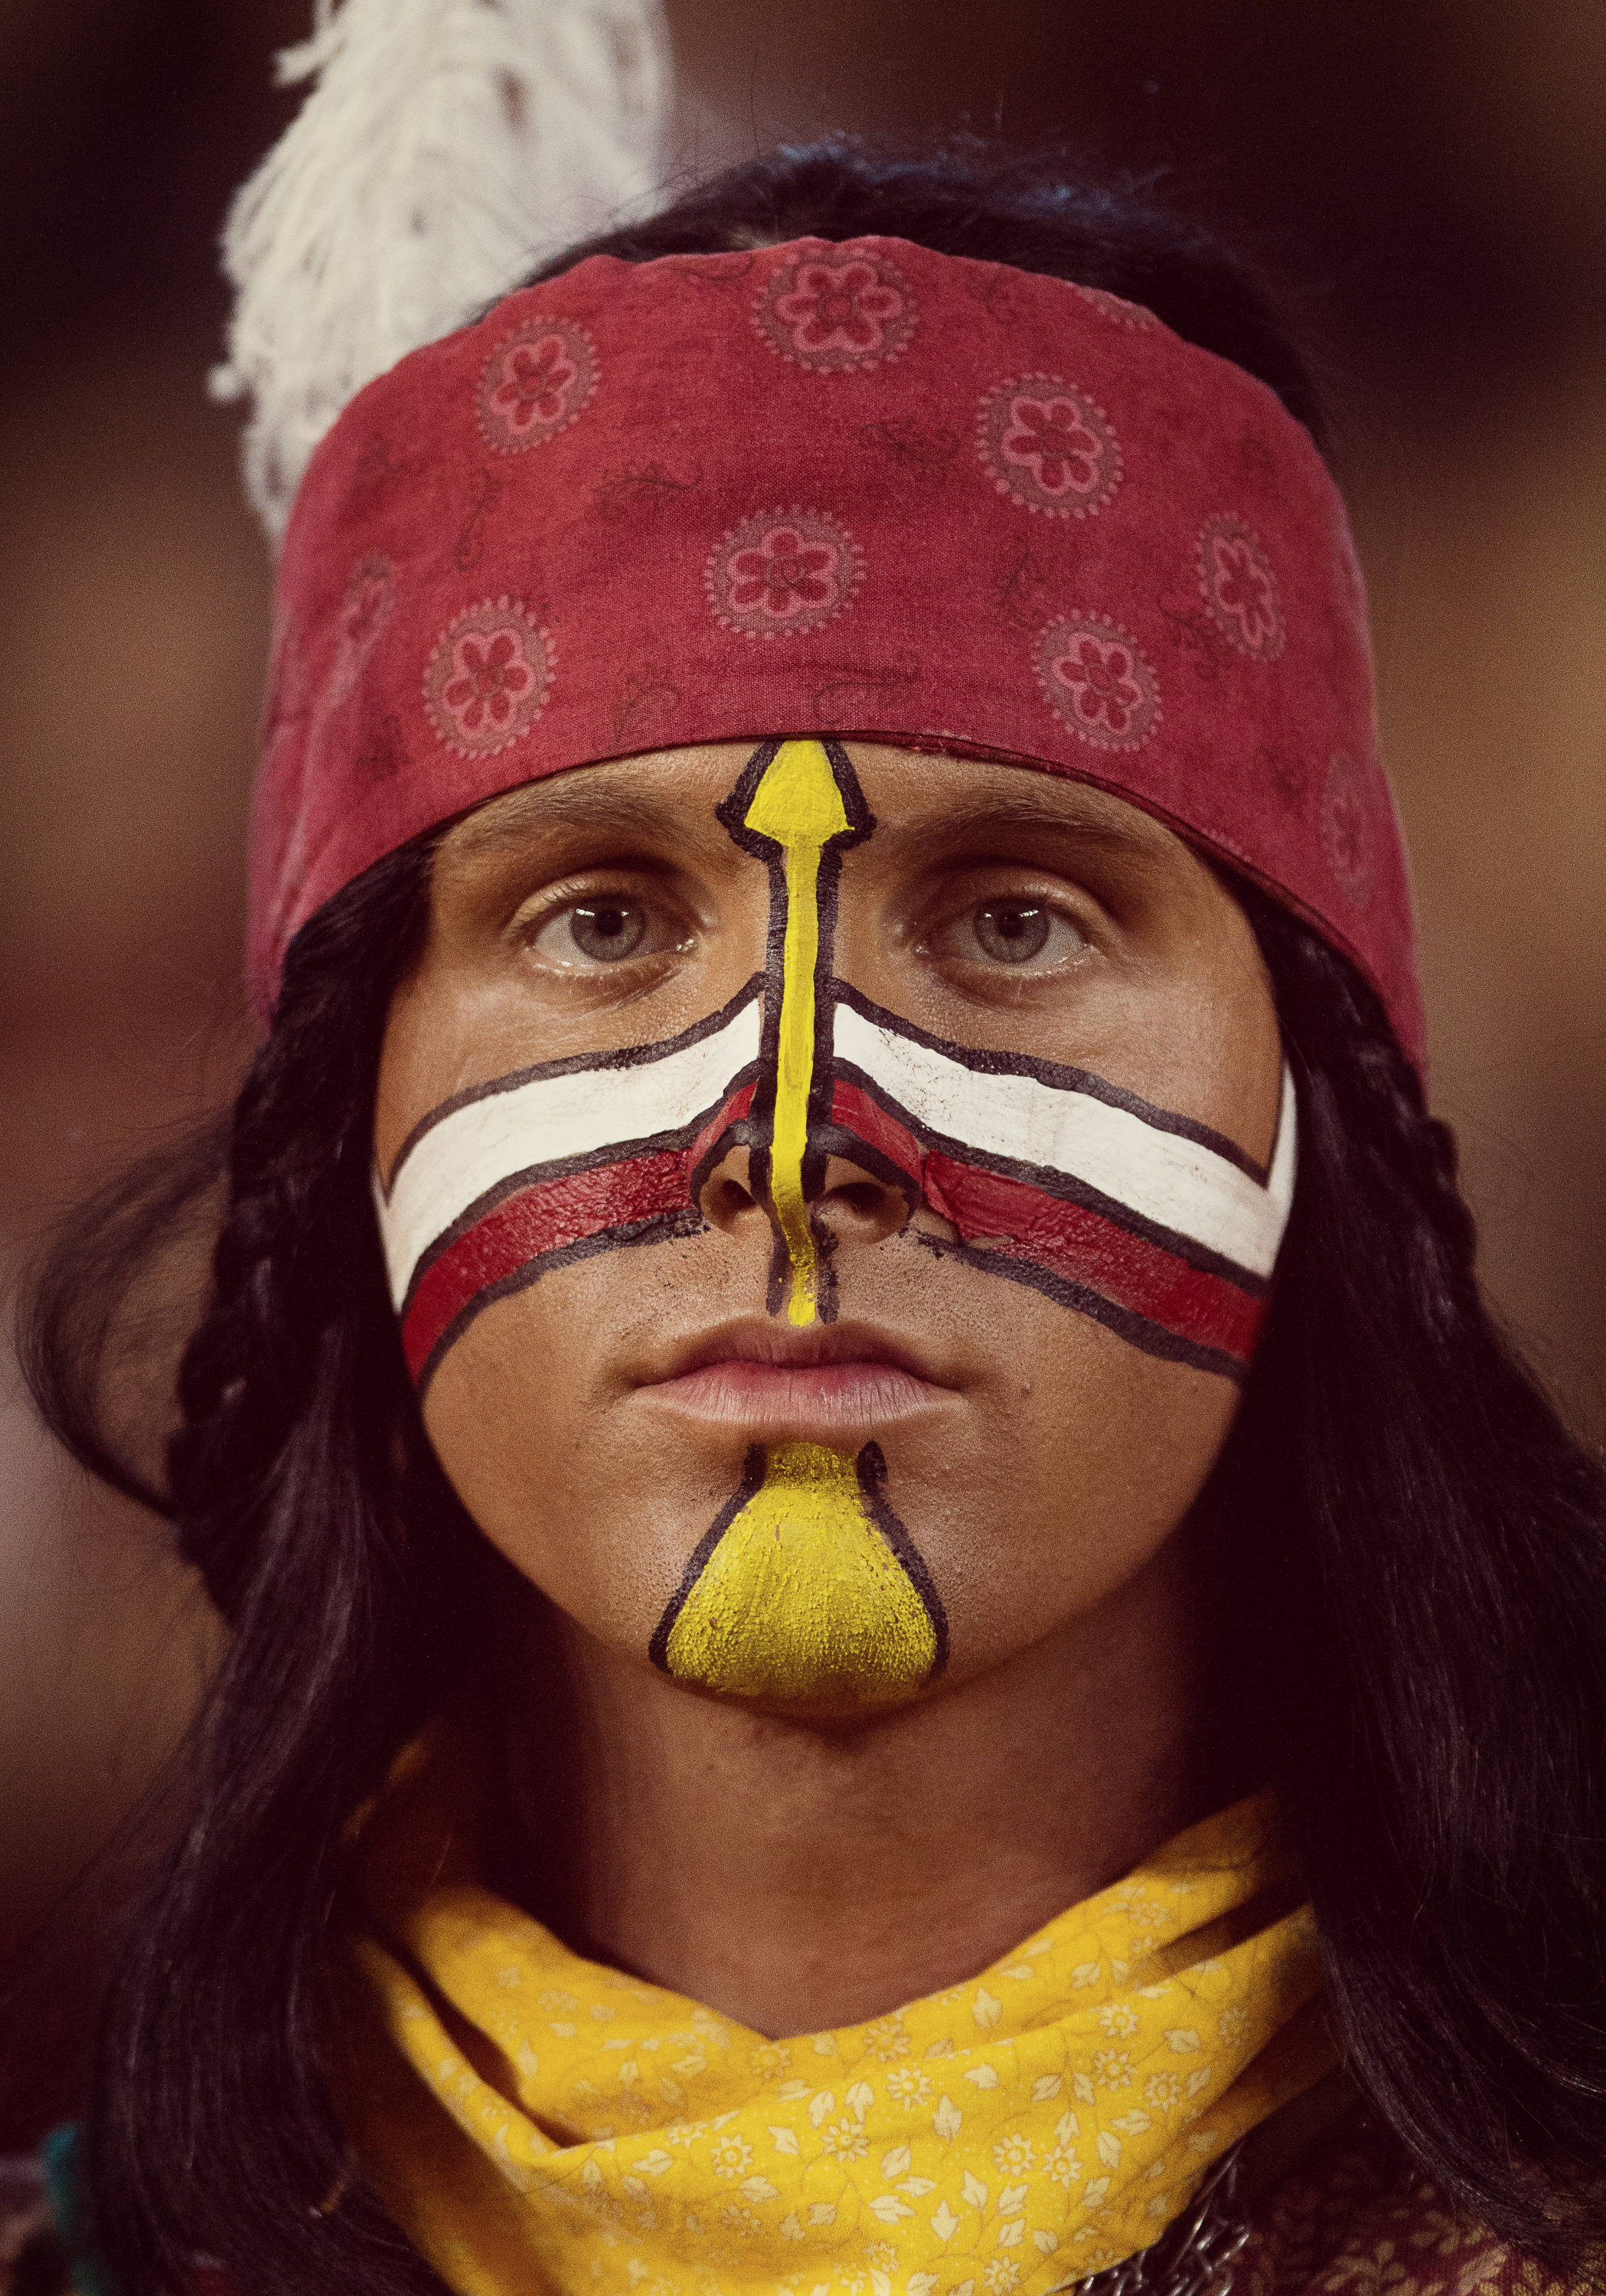 Osceola poses during FSU football's 41-14 win over Miami on Saturday, November 2, 2013 in Tallahassee, Fla. Photo by Michael Schwarz.